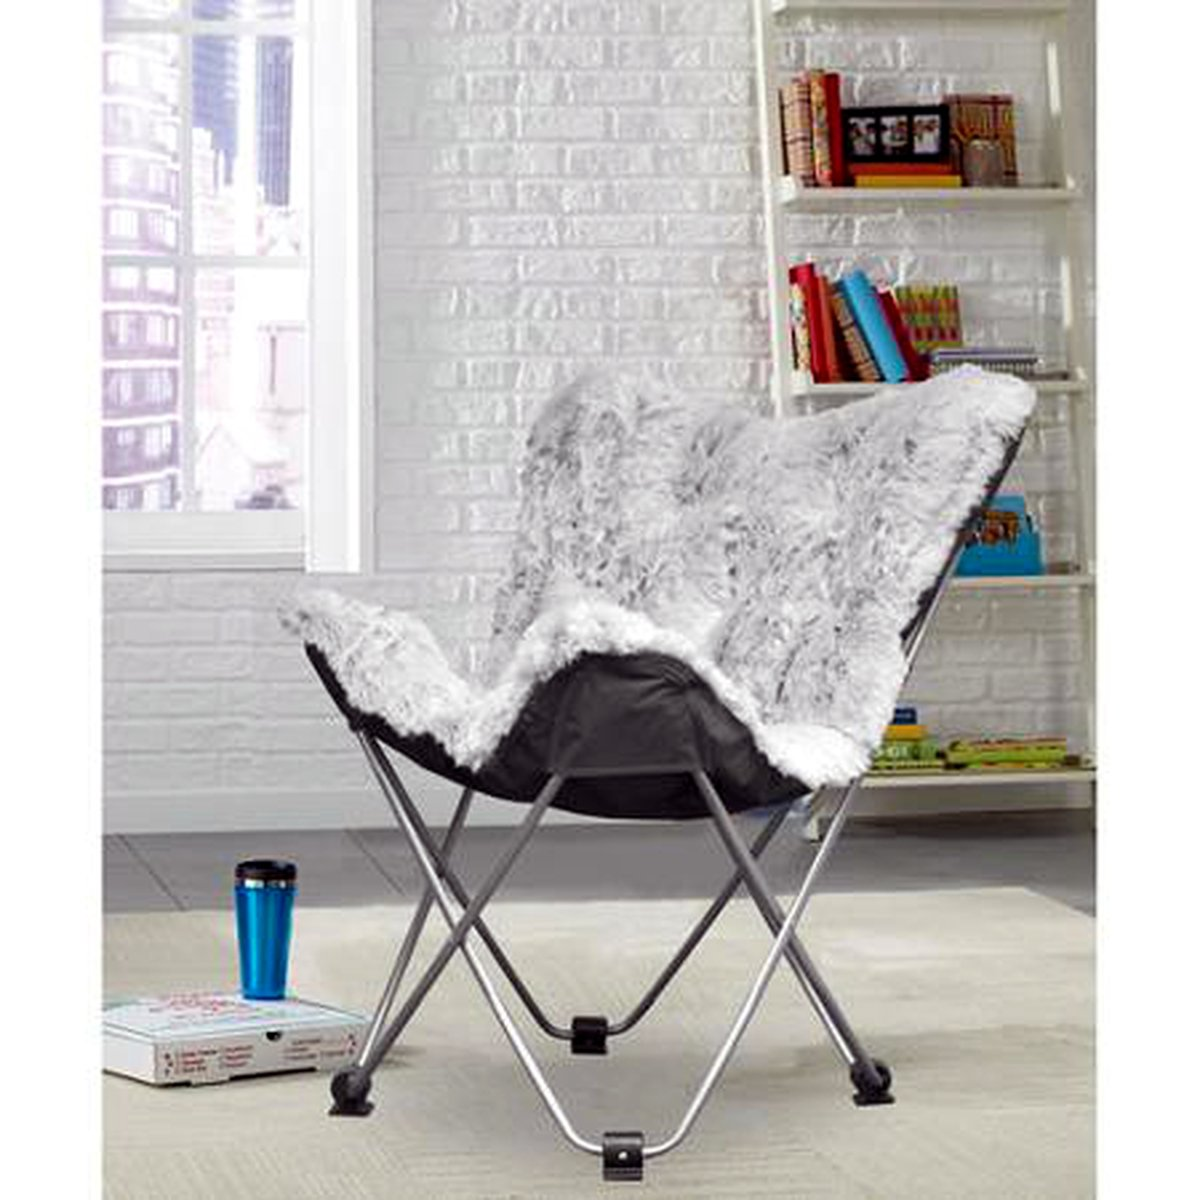 Attirant Amazon.com: Butterfly Folding Chair In Faux Fur Or Vegan Leather. Portable  For Sports, Adults U0026 Childrens Rooms, Tailgate Parties, Even Camping ...